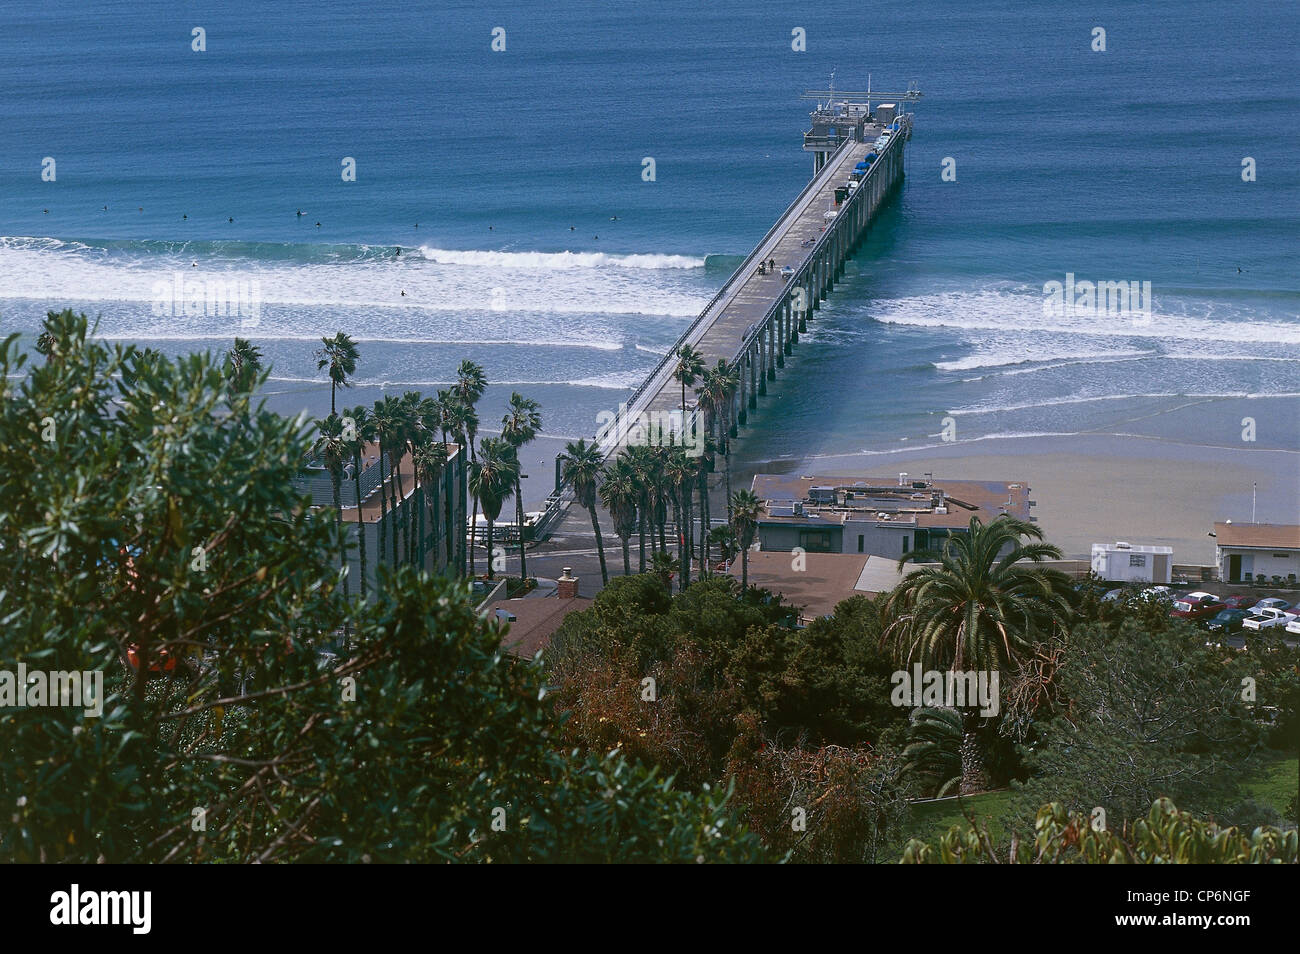 United States of America California San Diego. Scripps Institute of Oceanography, the pier at the beach in the area - Stock Image